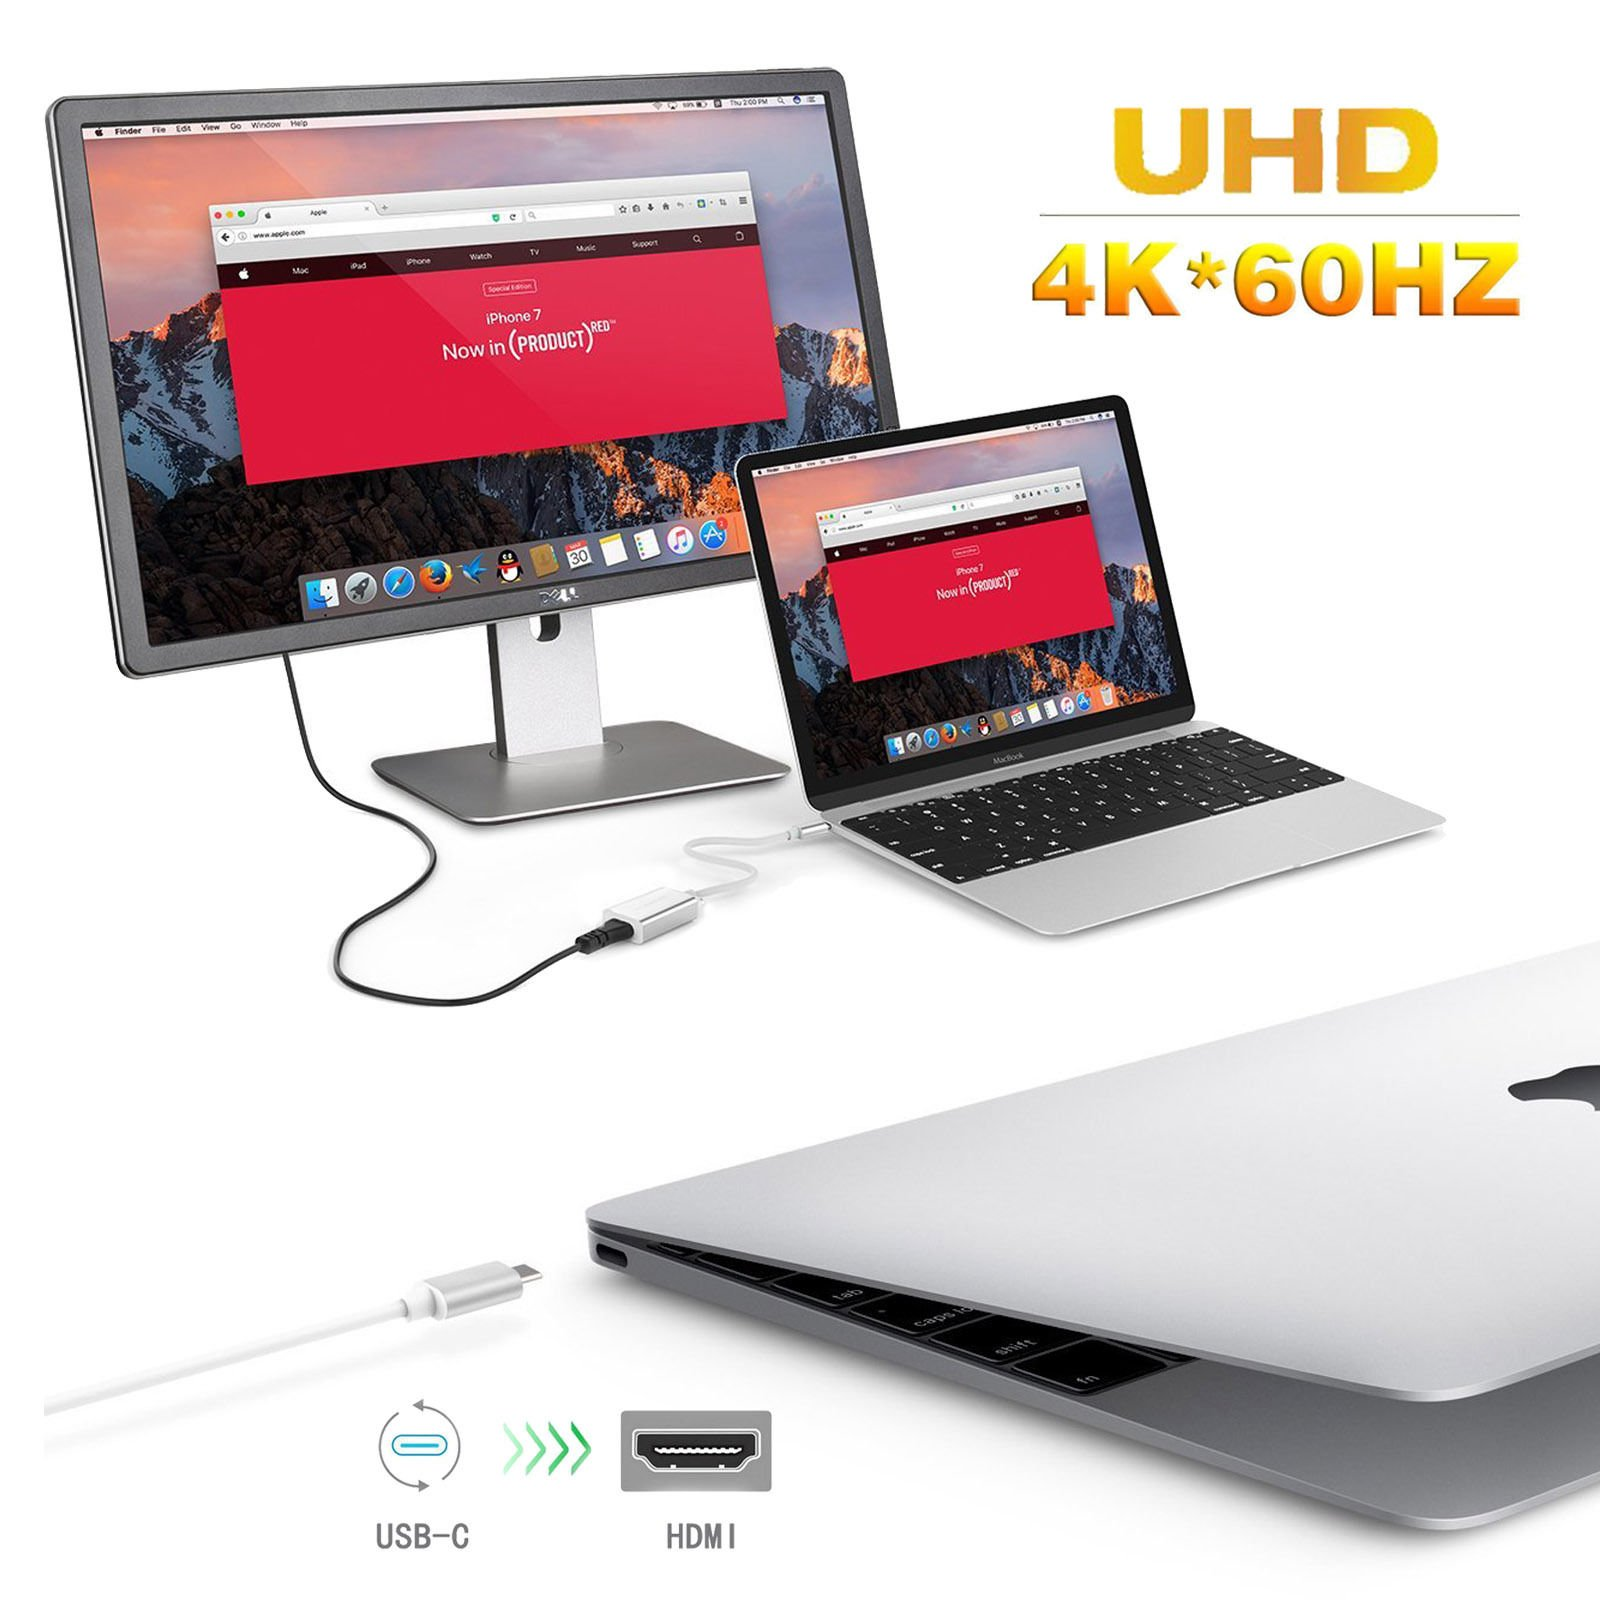 YCD USB 3.1 Type-C to HDMI Adapter, Thunderbolt 3 to HDMI 4K UHD Adapter Supports 4K/60Hz, for The 2016 MacBook Pro, MacBook 12'' (2015), ChromeBook Pixel, Dell XPS 15 and more by ONTEN (Image #3)